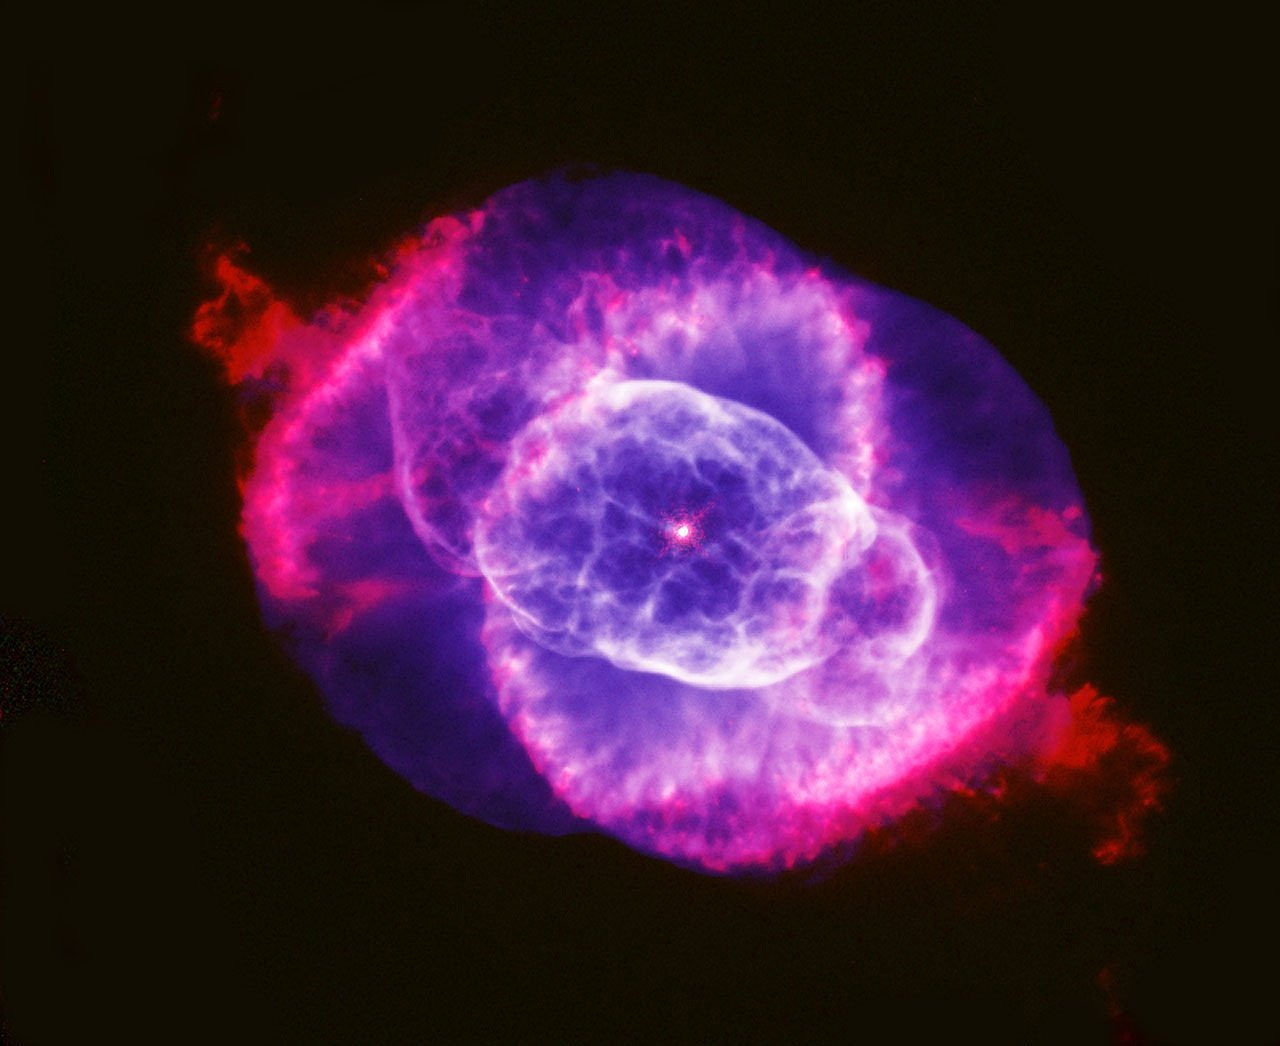 cat's eye nebula ngc 6543 planetary fog free photo